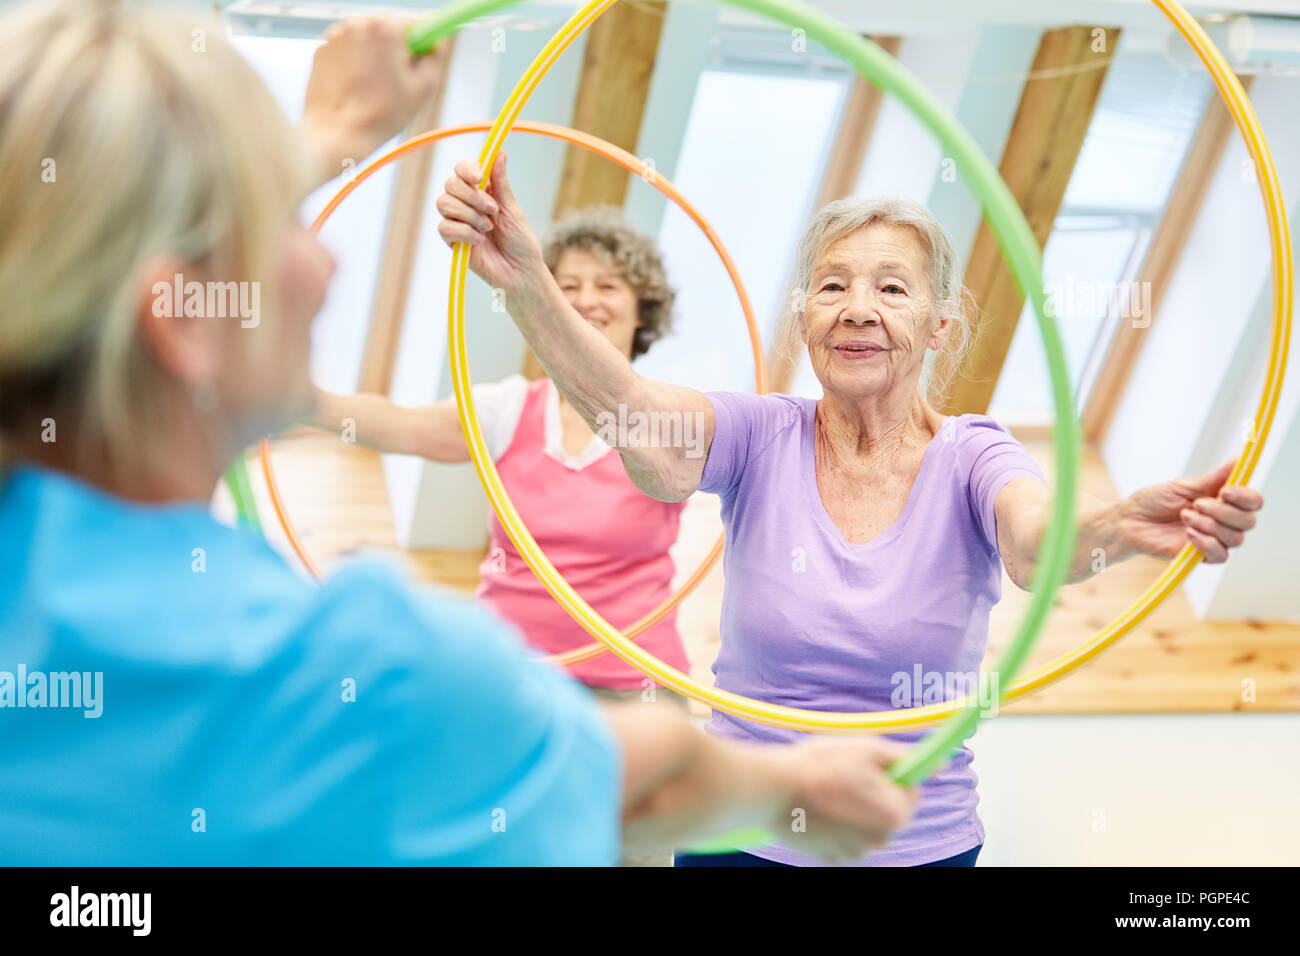 Seniors do fitness training with the tire in the physiotherapy - Stock Image